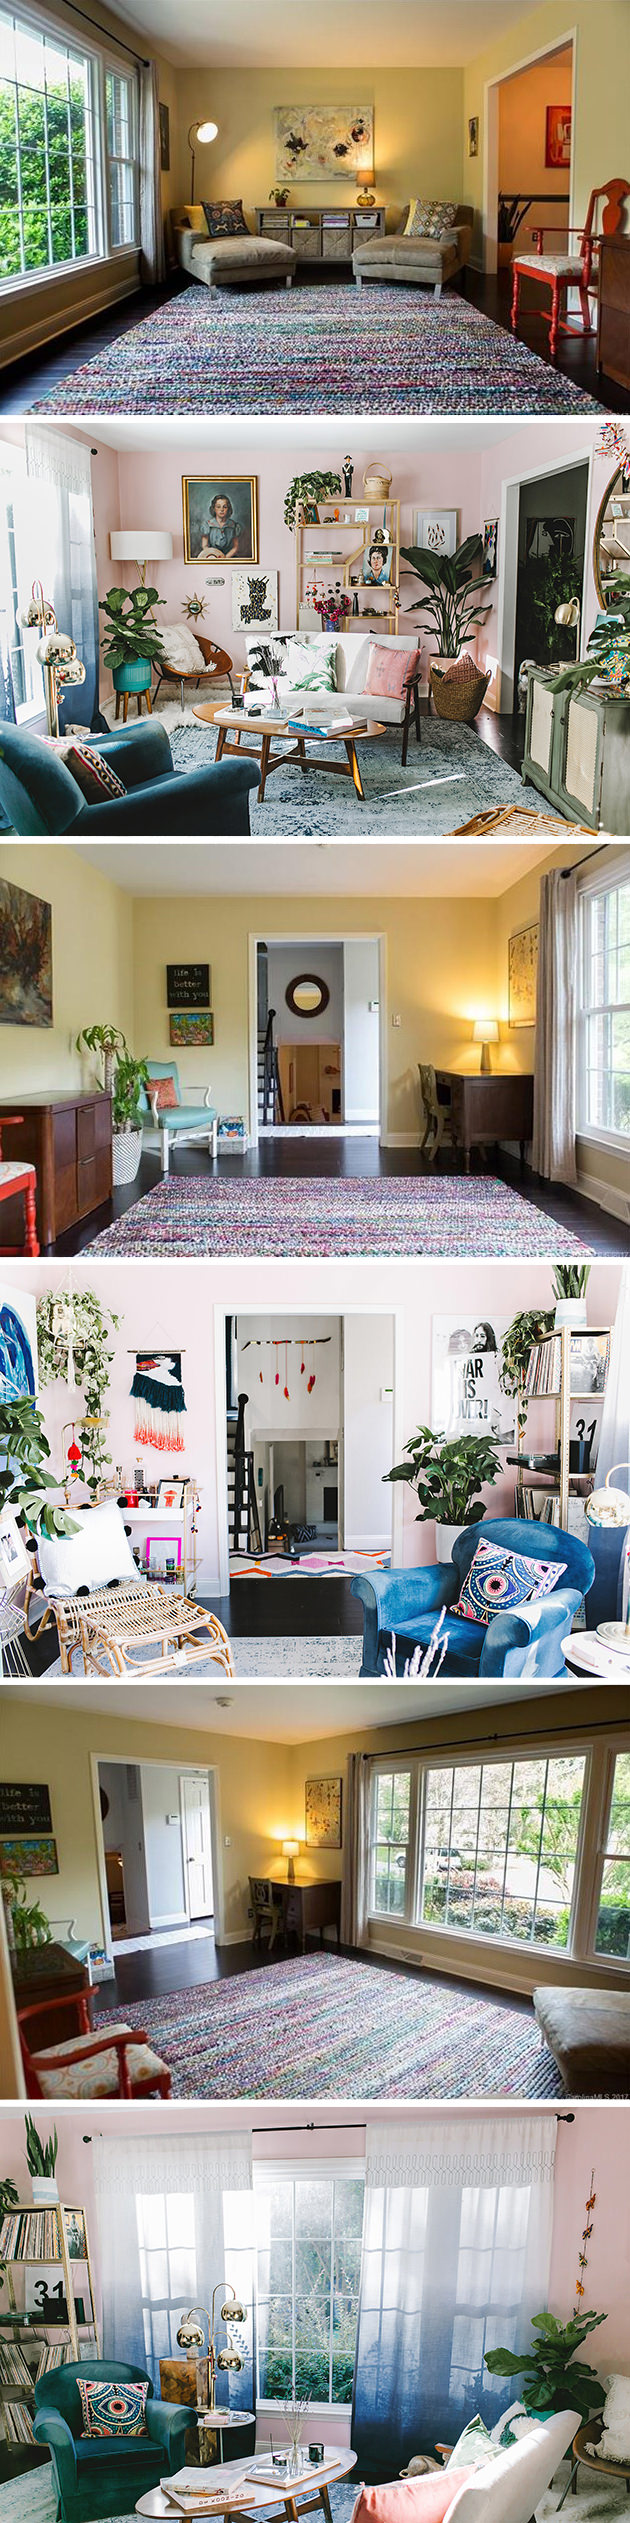 colorful bohemian eclectic living room makeover with Wayfair - before and after